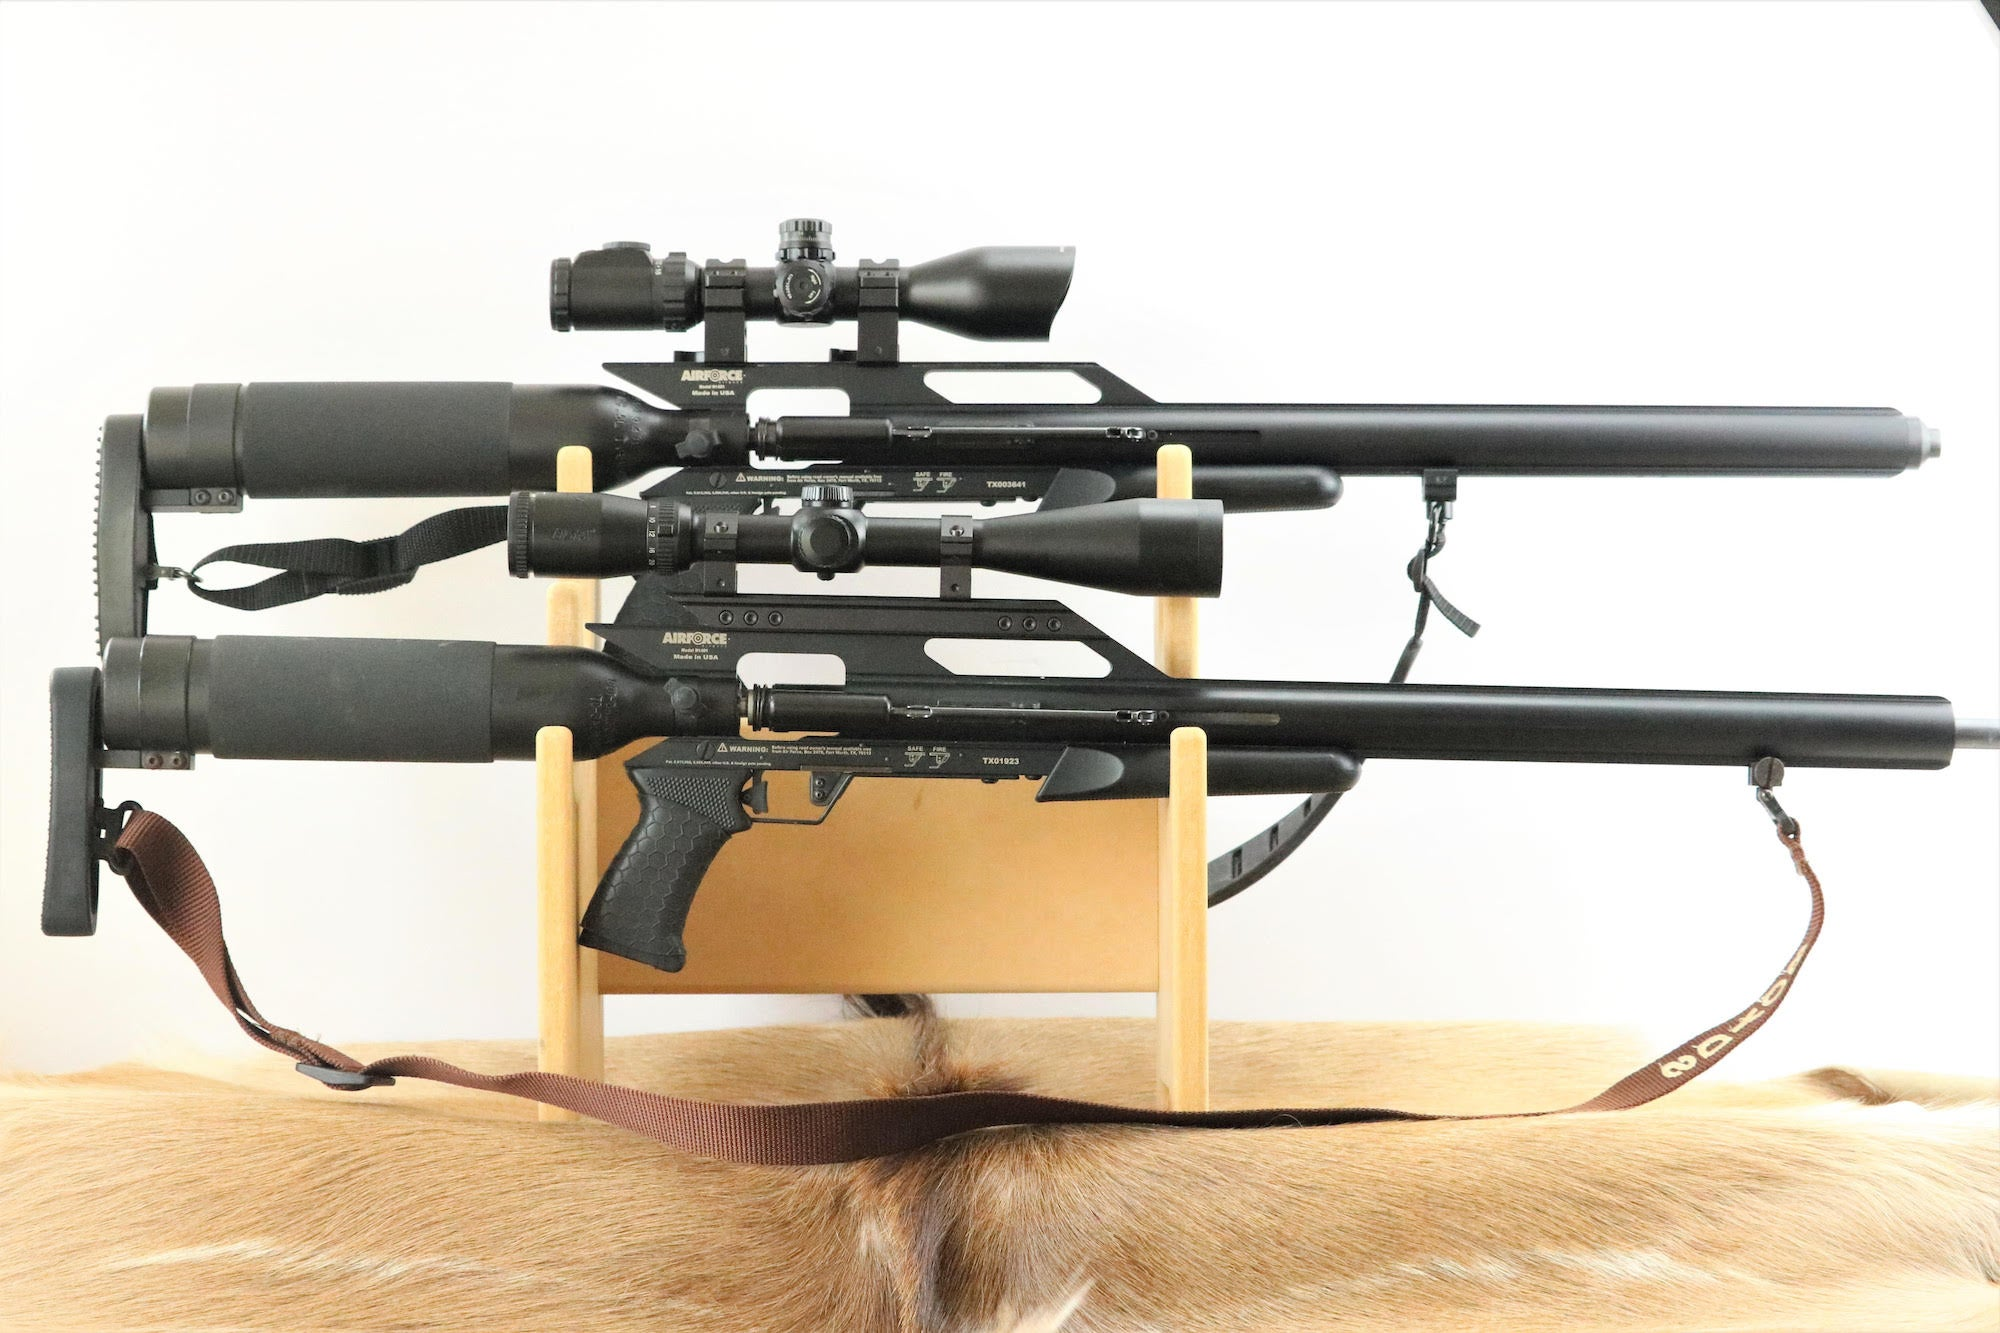 The AirForce Texan .308 and .357 are our picks for best air rifles.